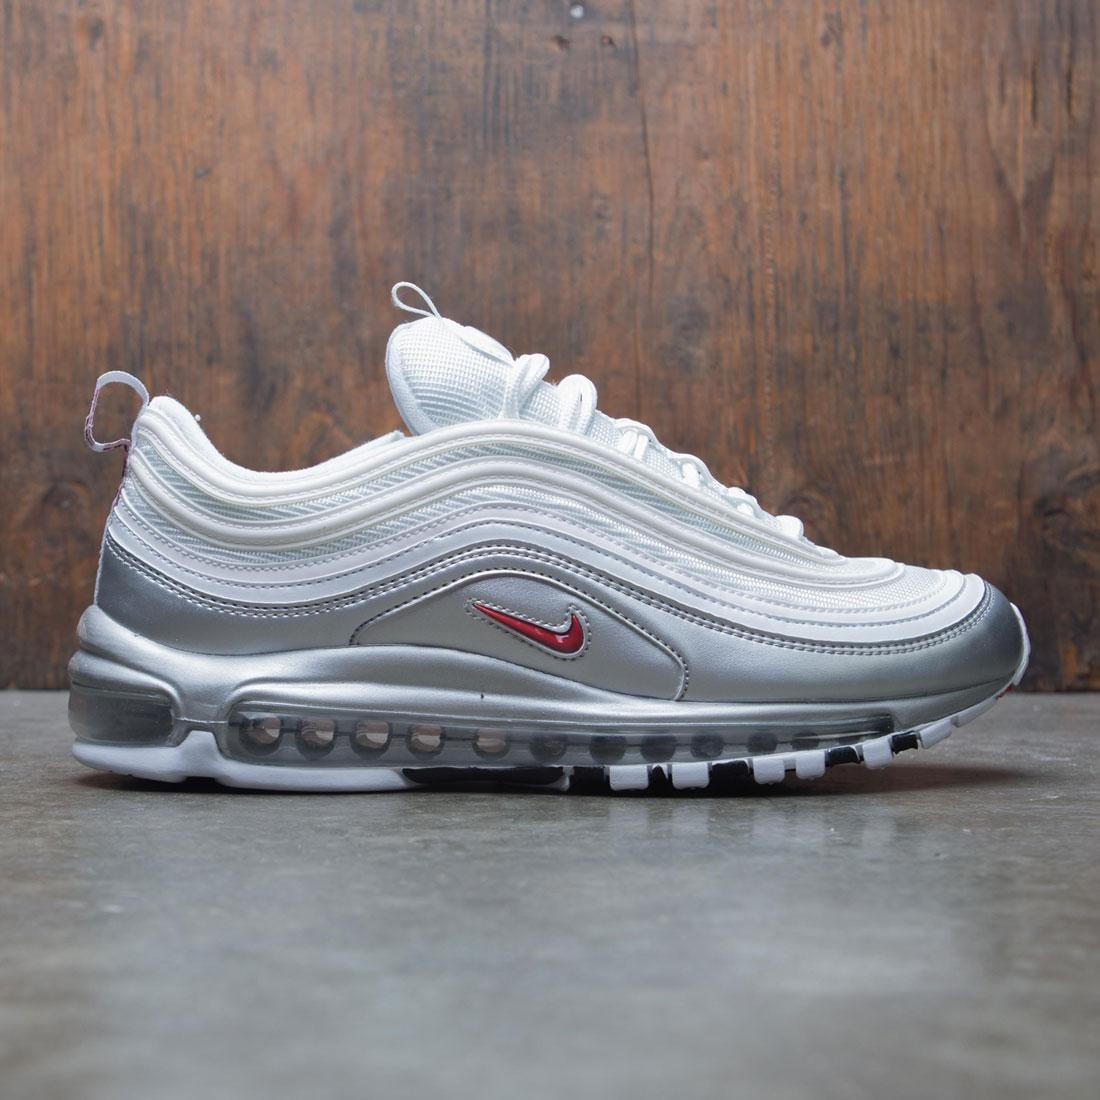 6be2a4f5f6 nike men air max 97 qs white varsity red metallic silver black